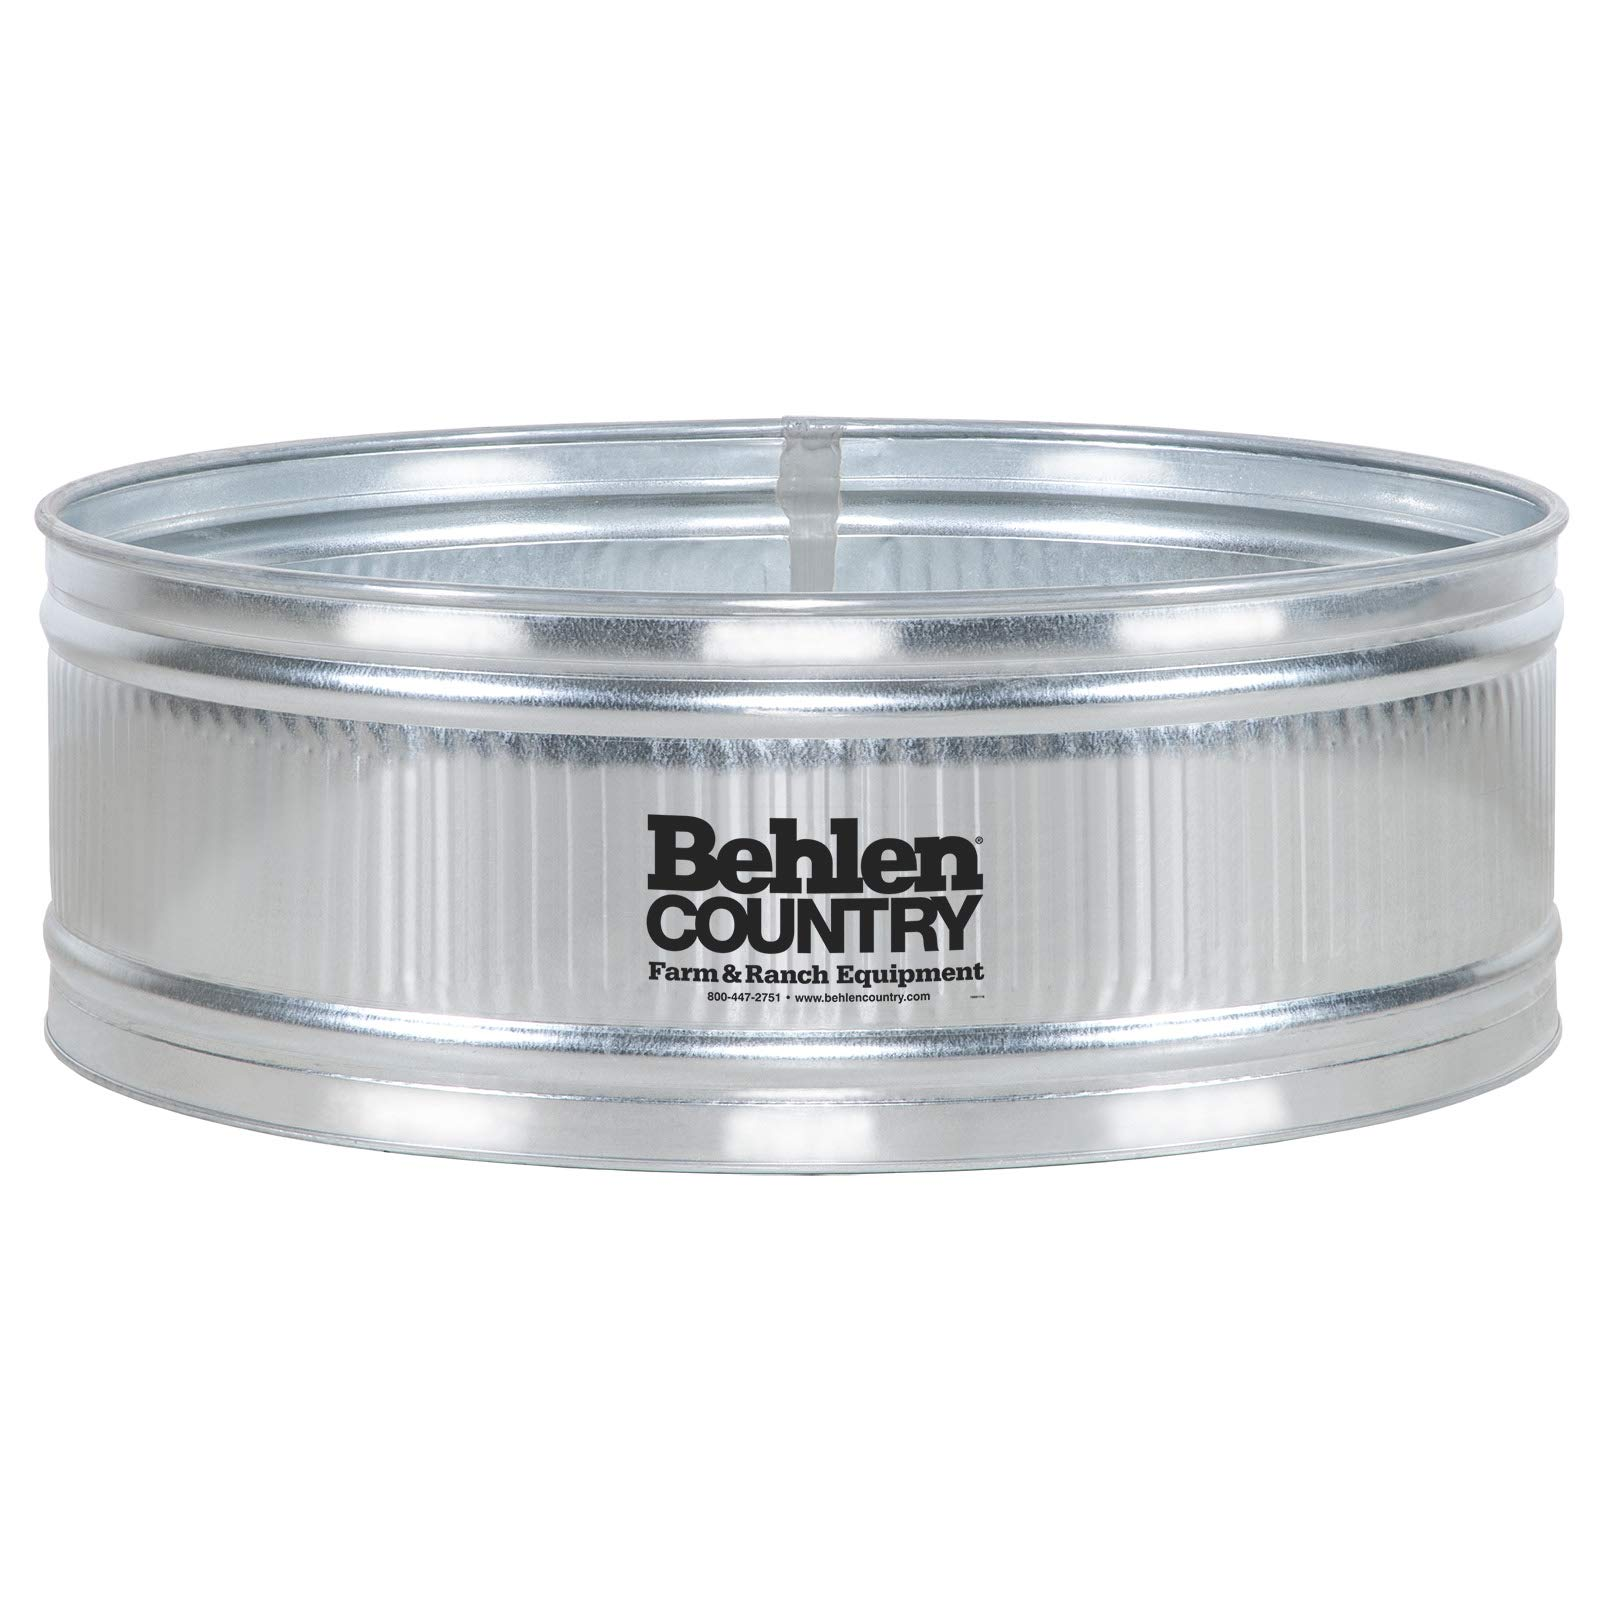 Behlen Country 6′ Galvanized Steel Stock Tank Round Approximately 389 Gallon Livestock Watering Outdoor Garden Pool